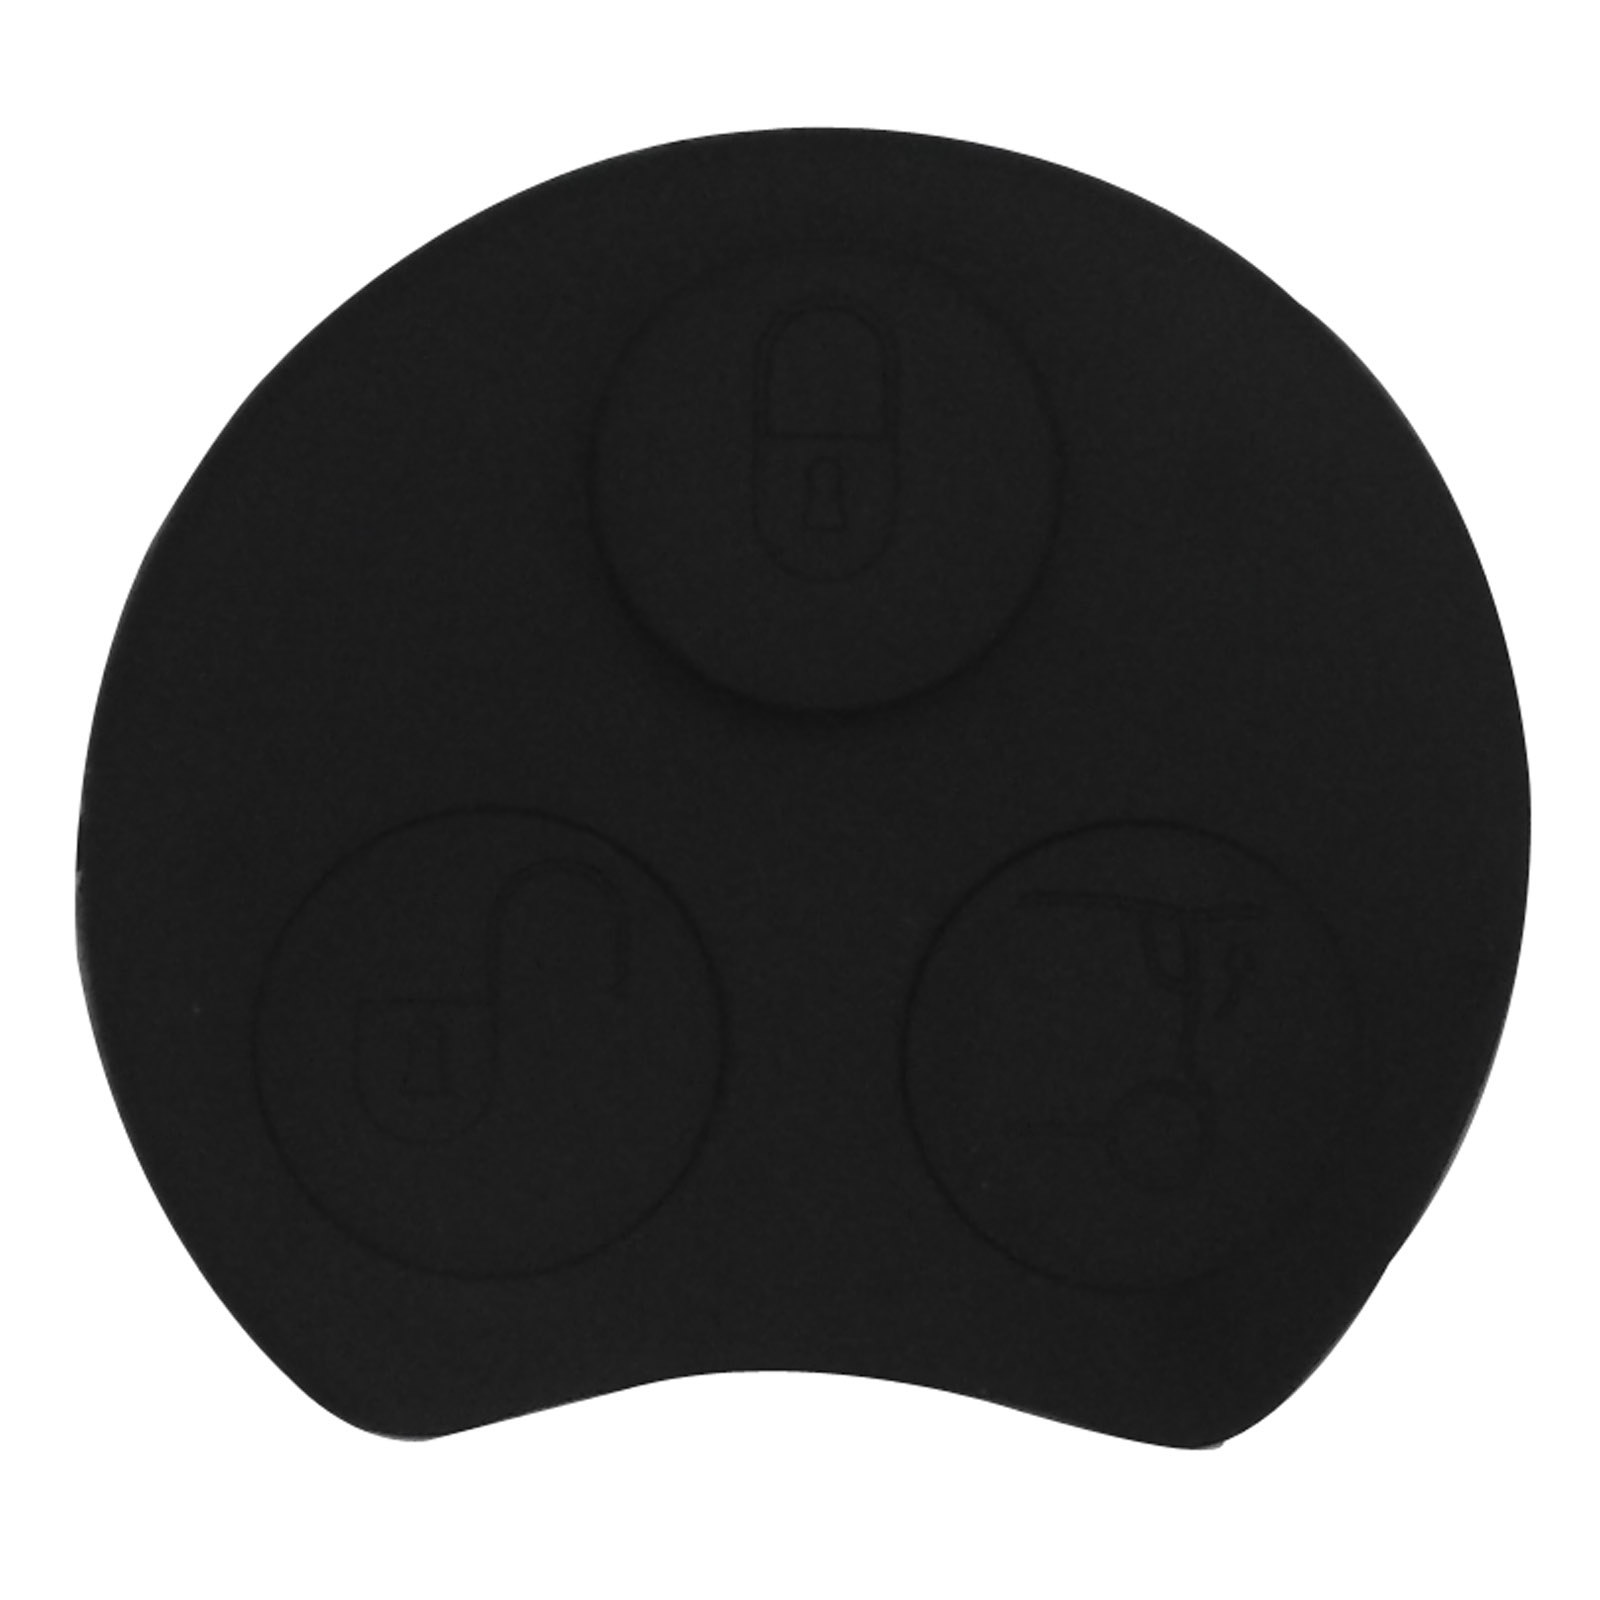 jingyuqin Remote <font><b>Key</b></font> Button Pad for Mercedes Benz <font><b>Smart</b></font> Two <font><b>450</b></font> Mayitr <font><b>Smart</b></font> <font><b>Key</b></font> Fob Case Shell Rubber Pad 3 Buttons image